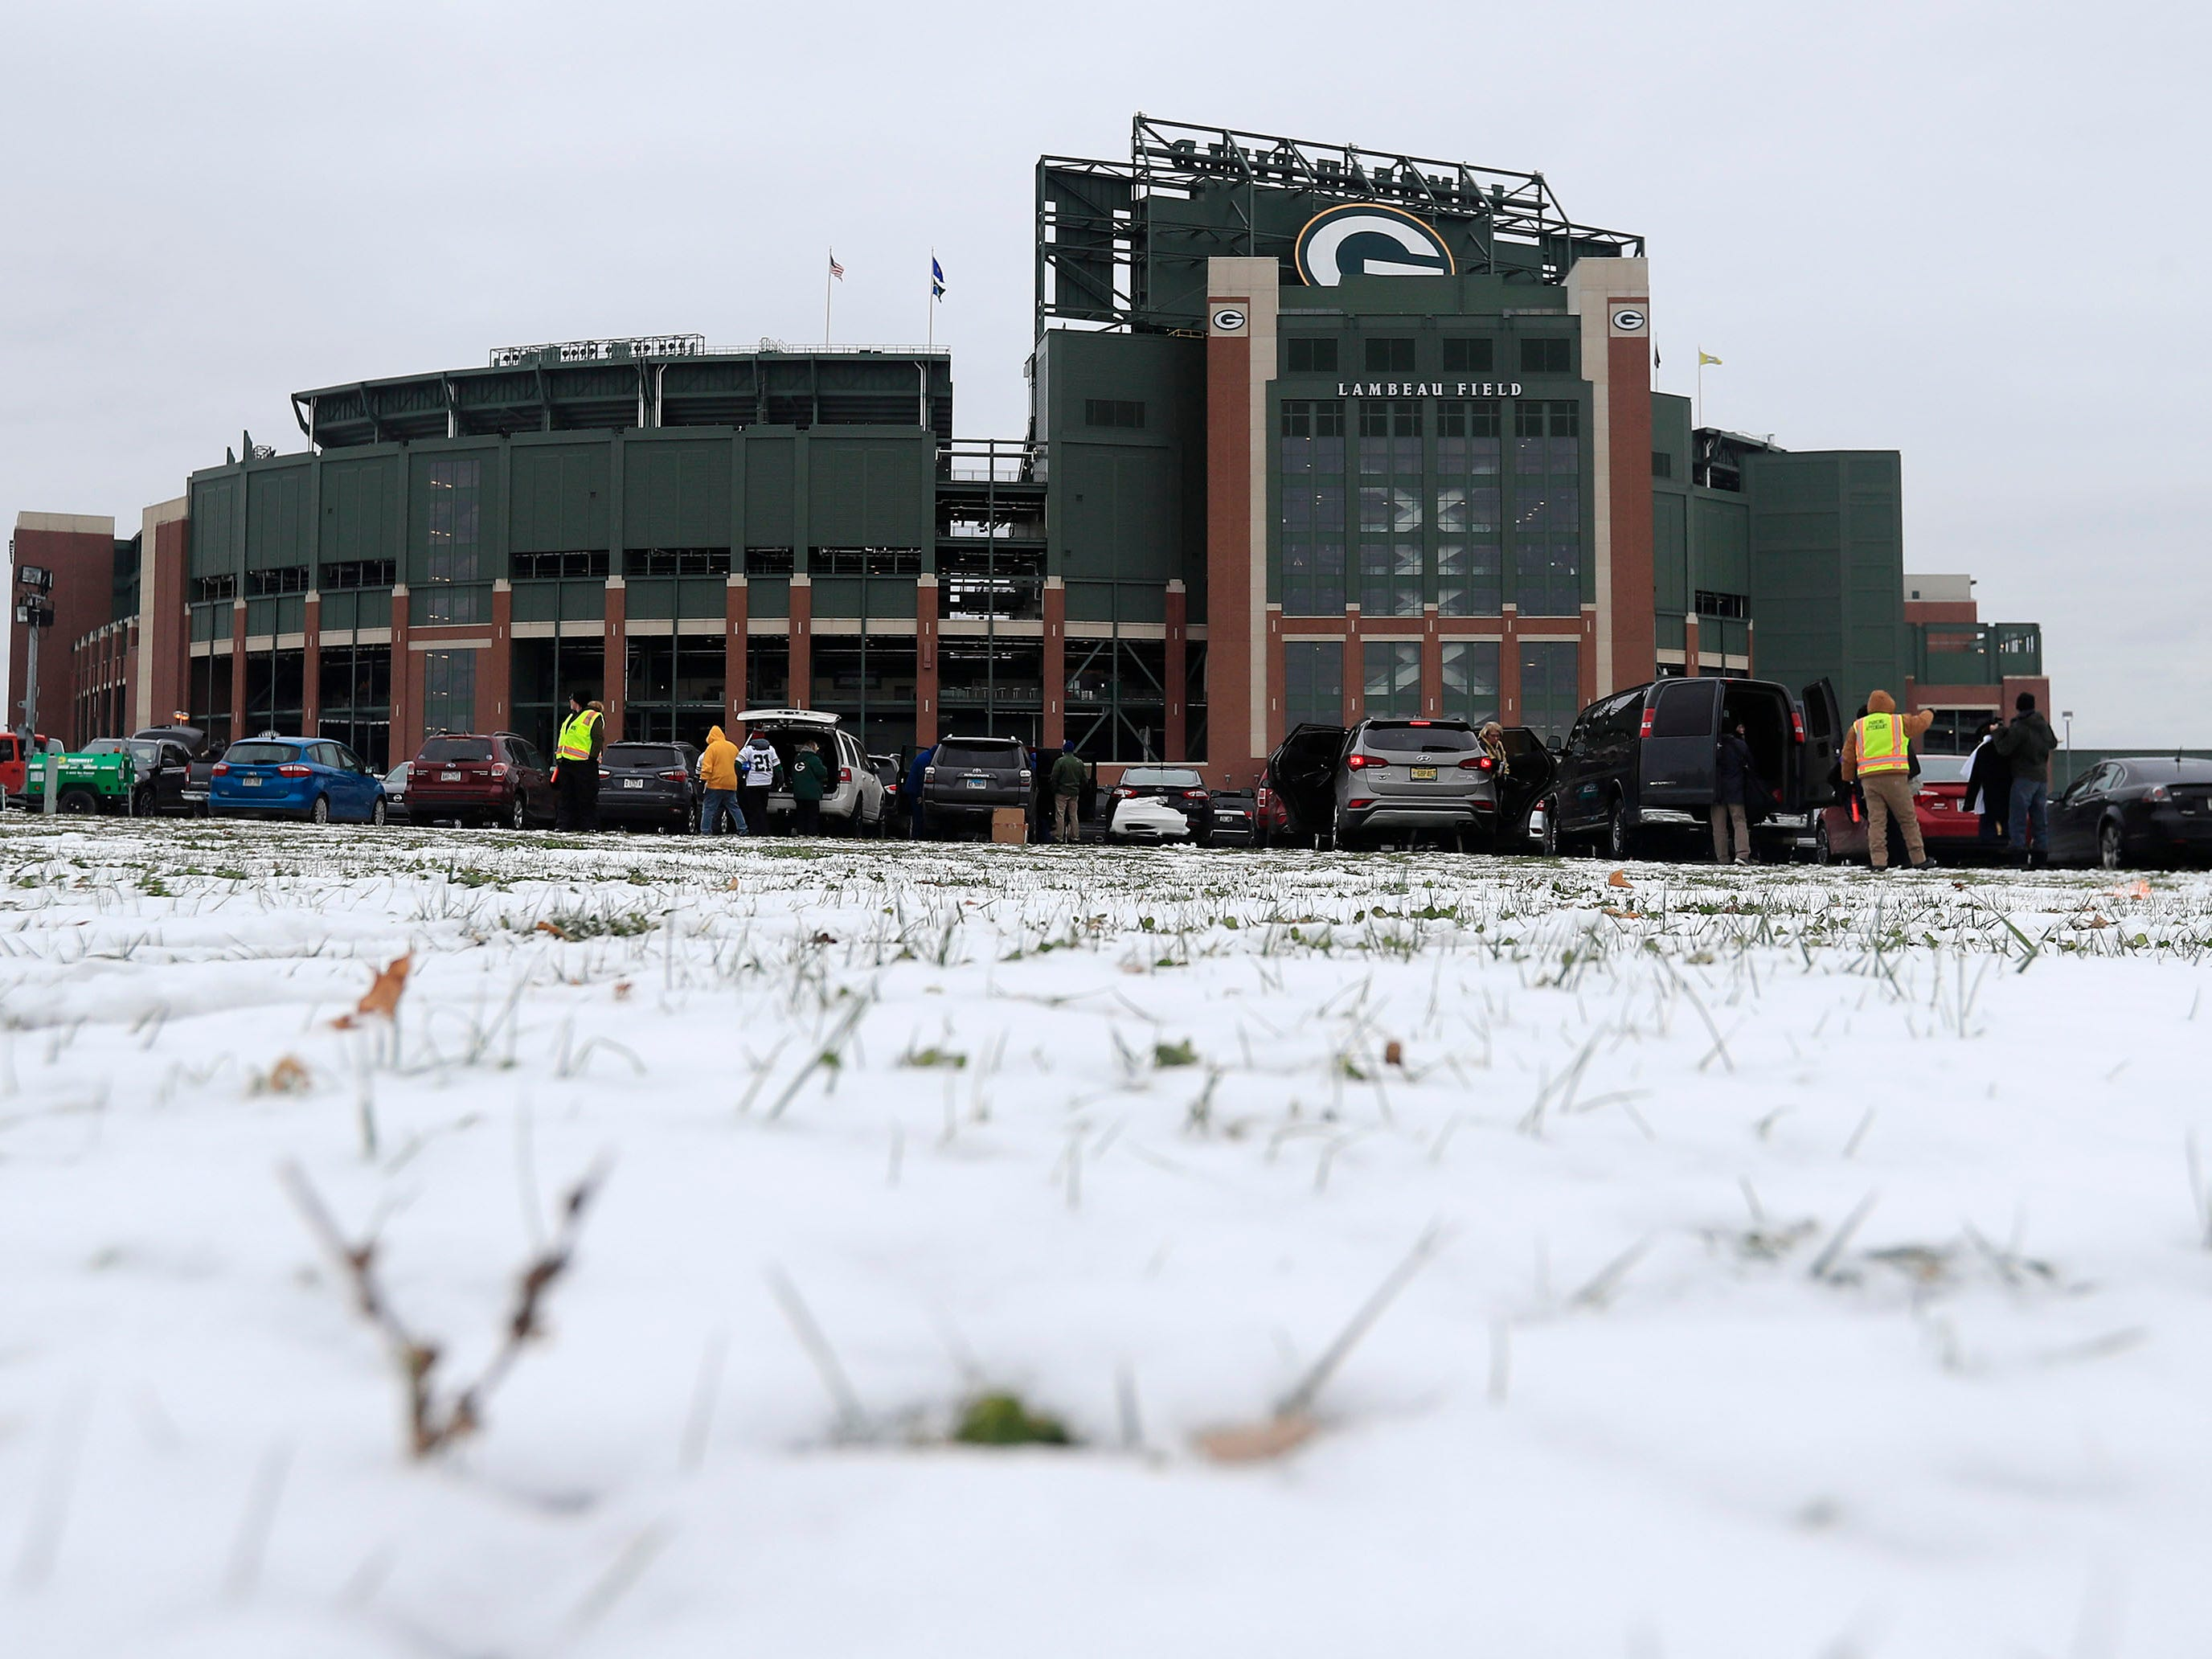 Snow covers the ground outside Lambeau Field prior to the game between the Miami Dolphins and the Green Bay Packers.